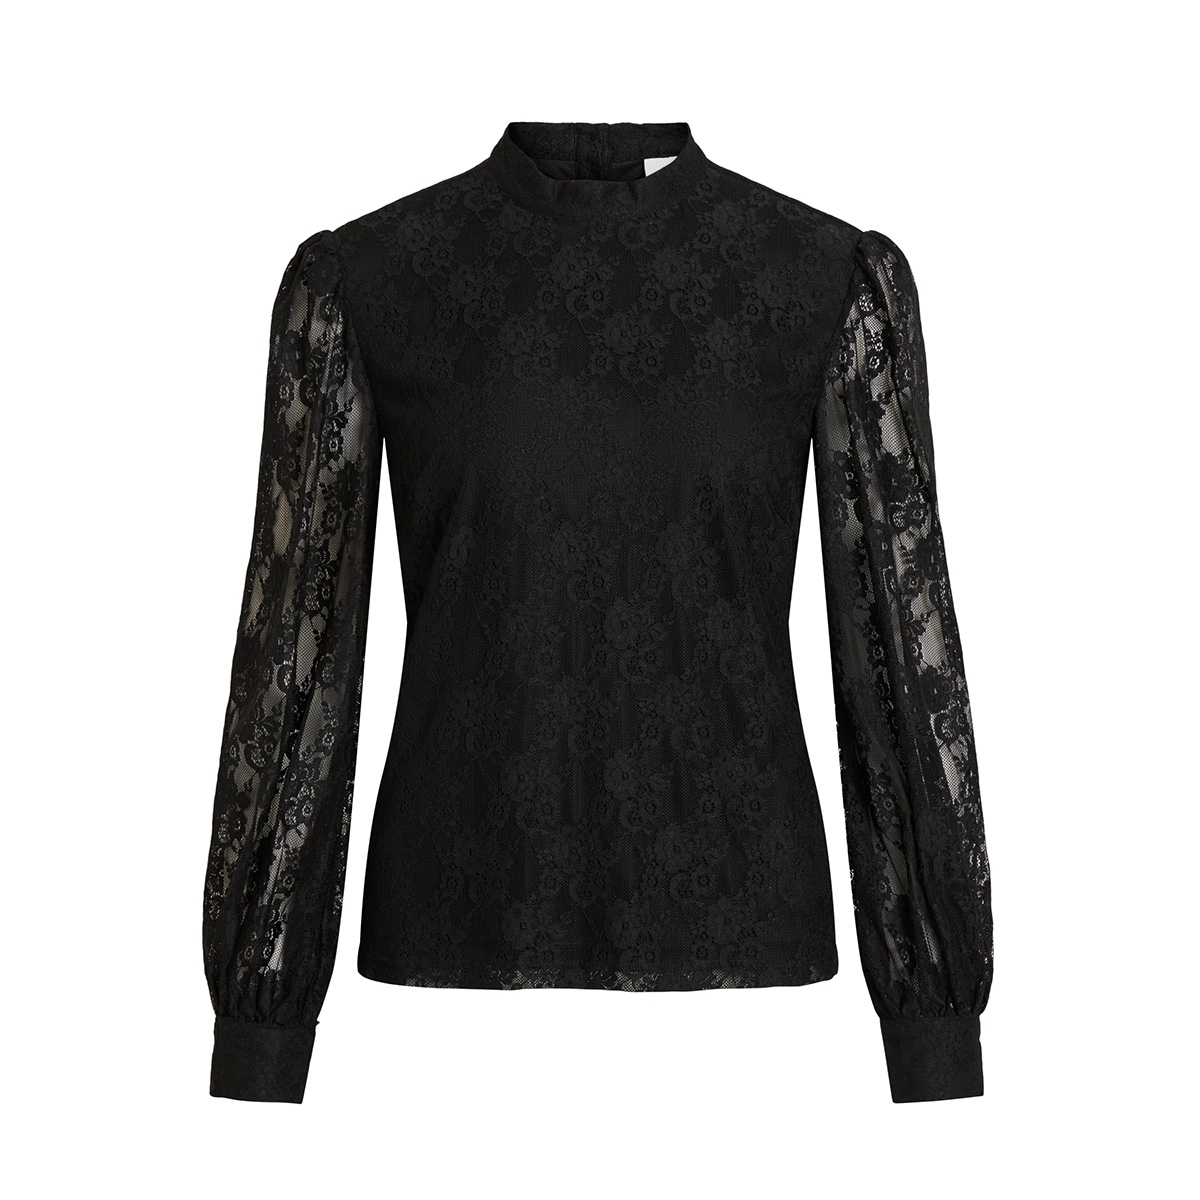 vilava l/s top 14056634 vila t-shirt black